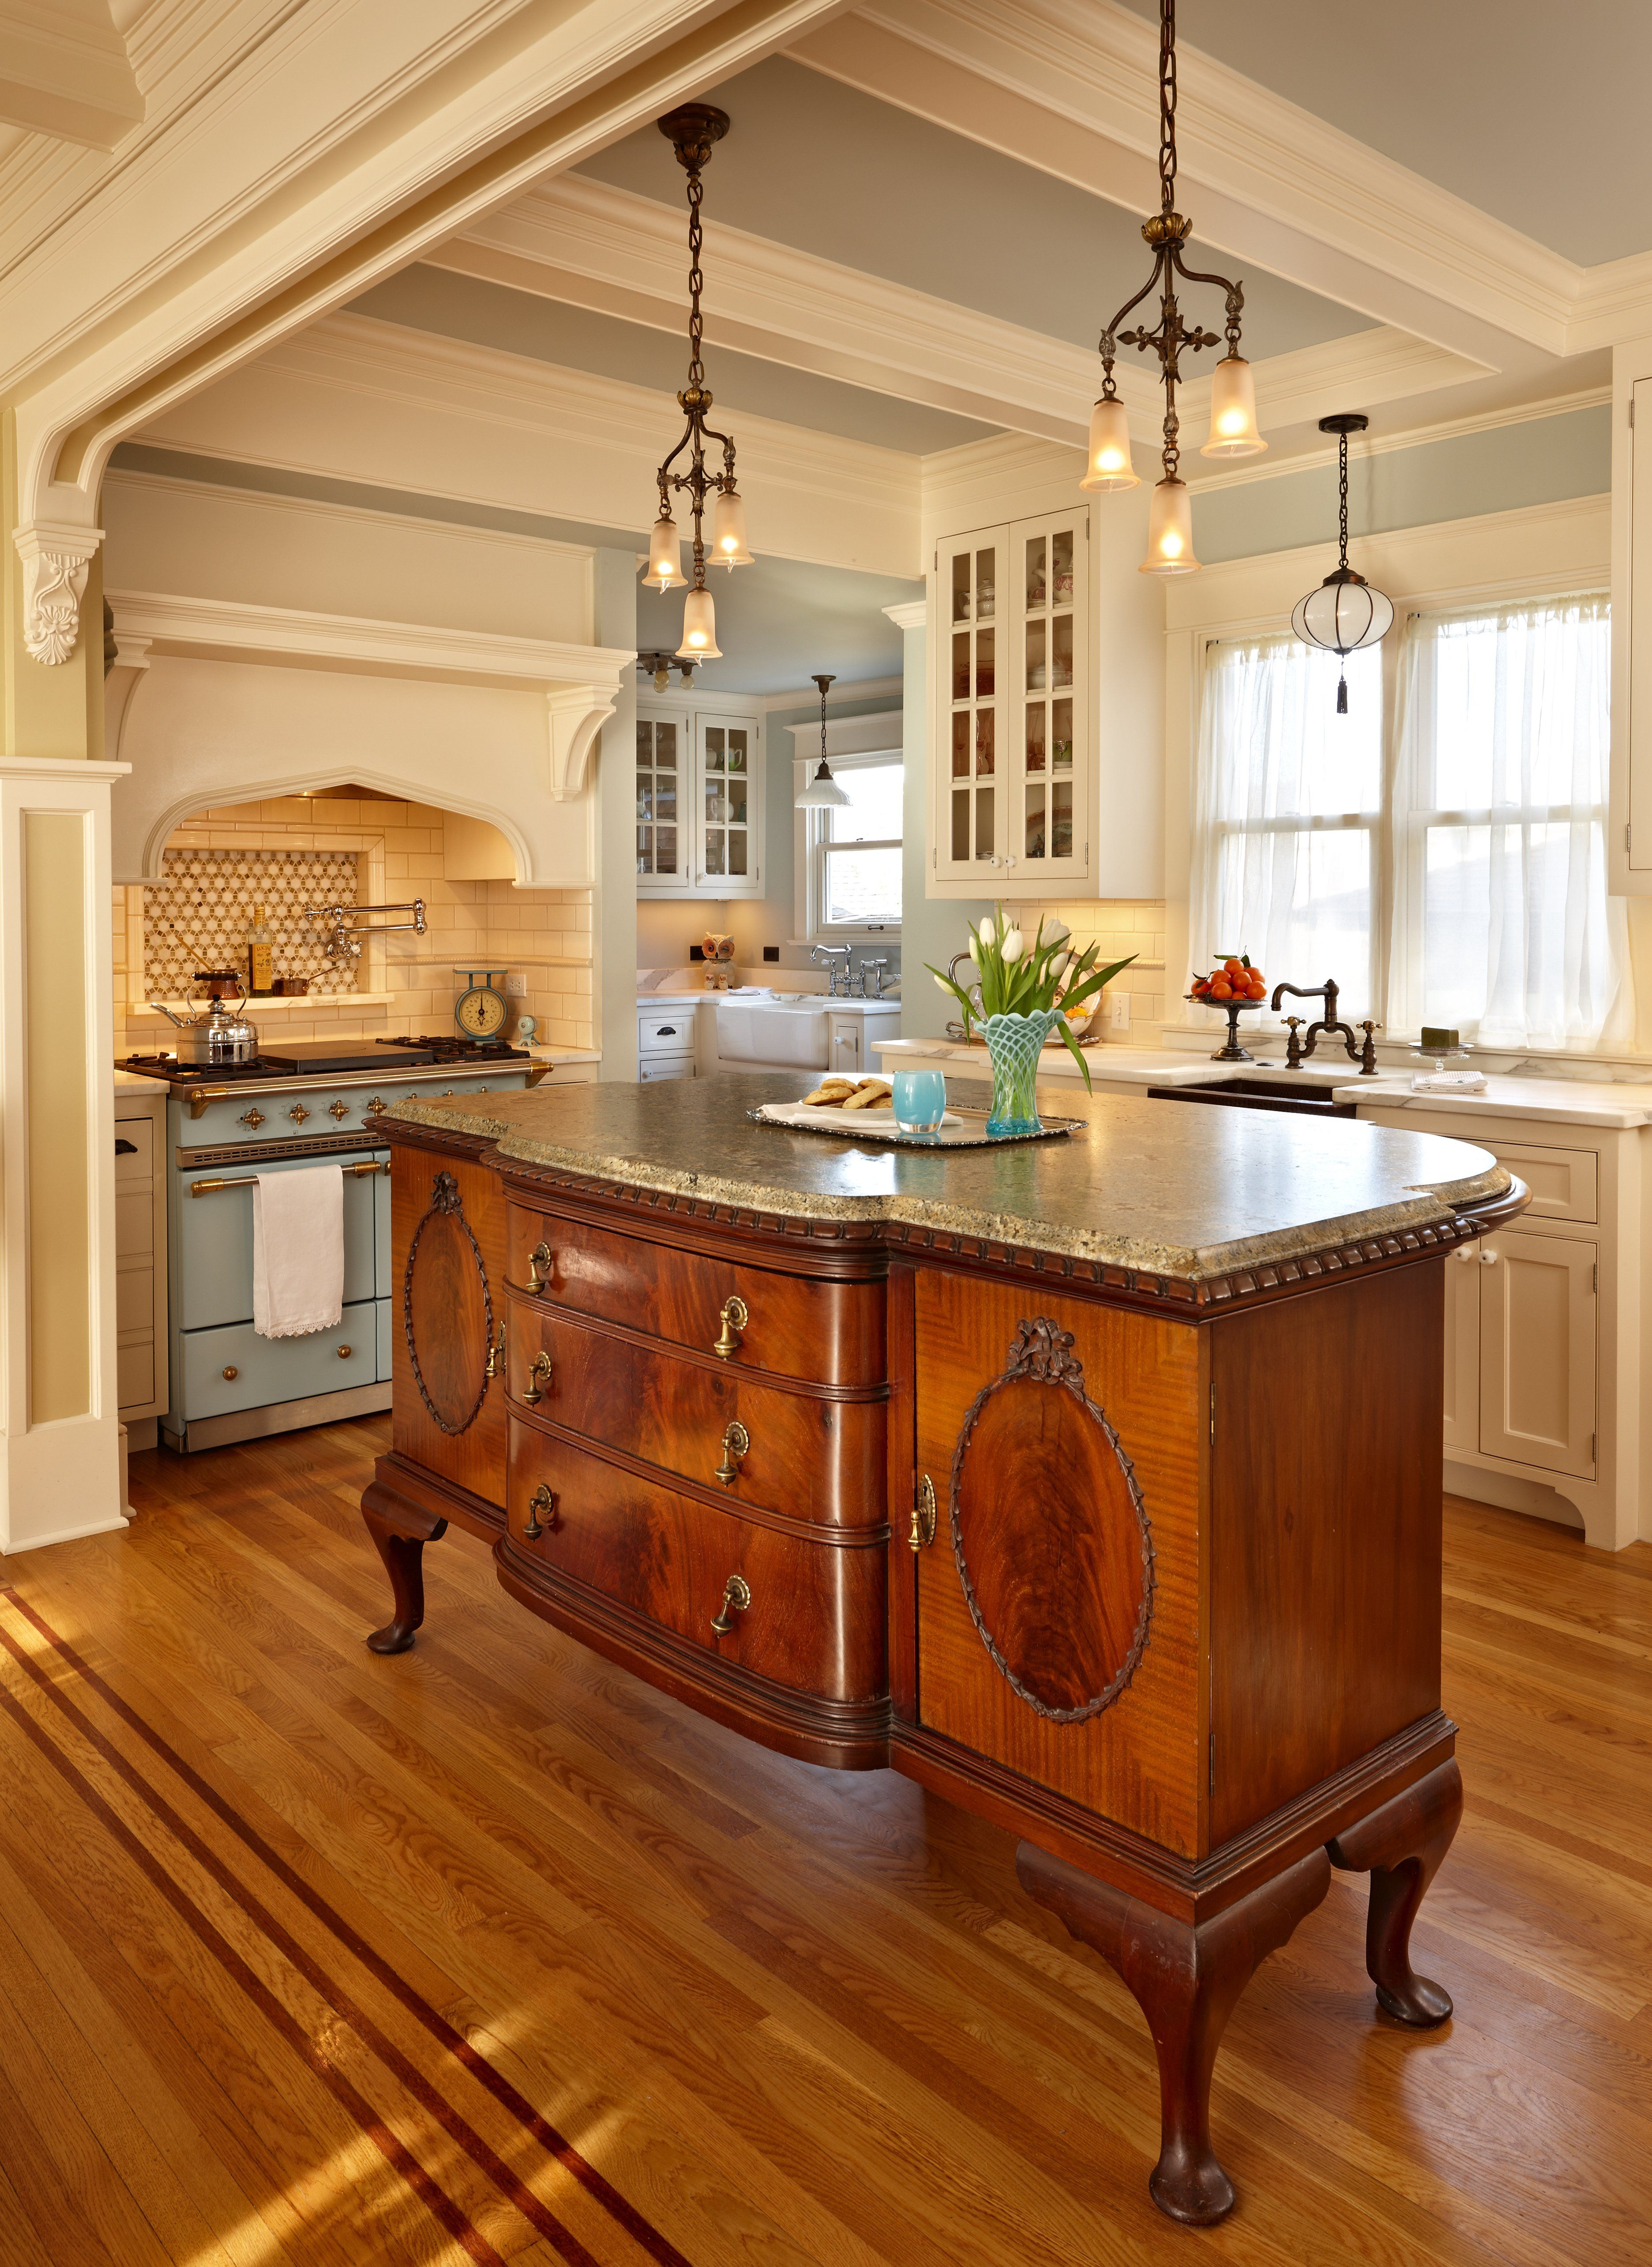 Kitchen Island Centerpiece The Centerpiece Of The Kitchen Is An Antique French Cabinet